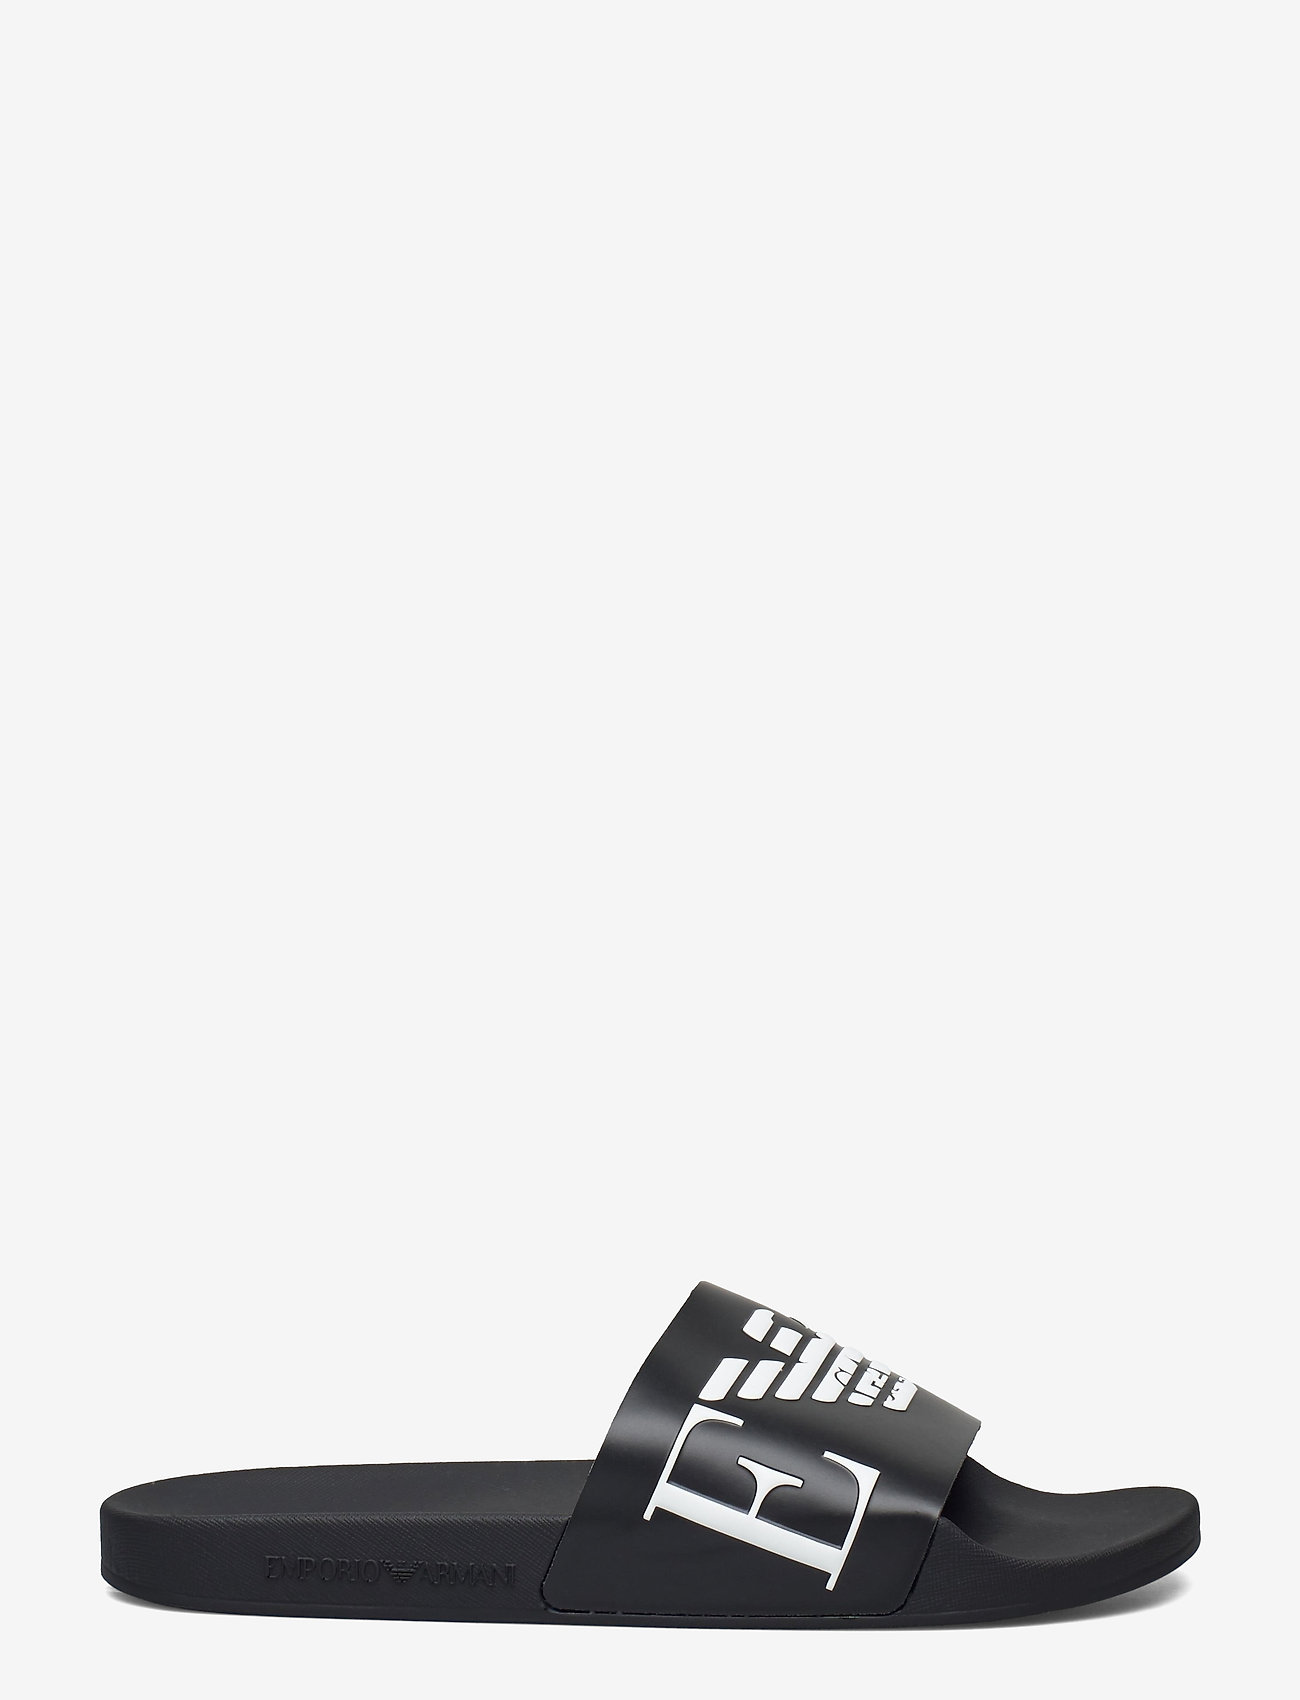 Emporio Armani - SLIPPER - pool sliders - black+white+black - 1